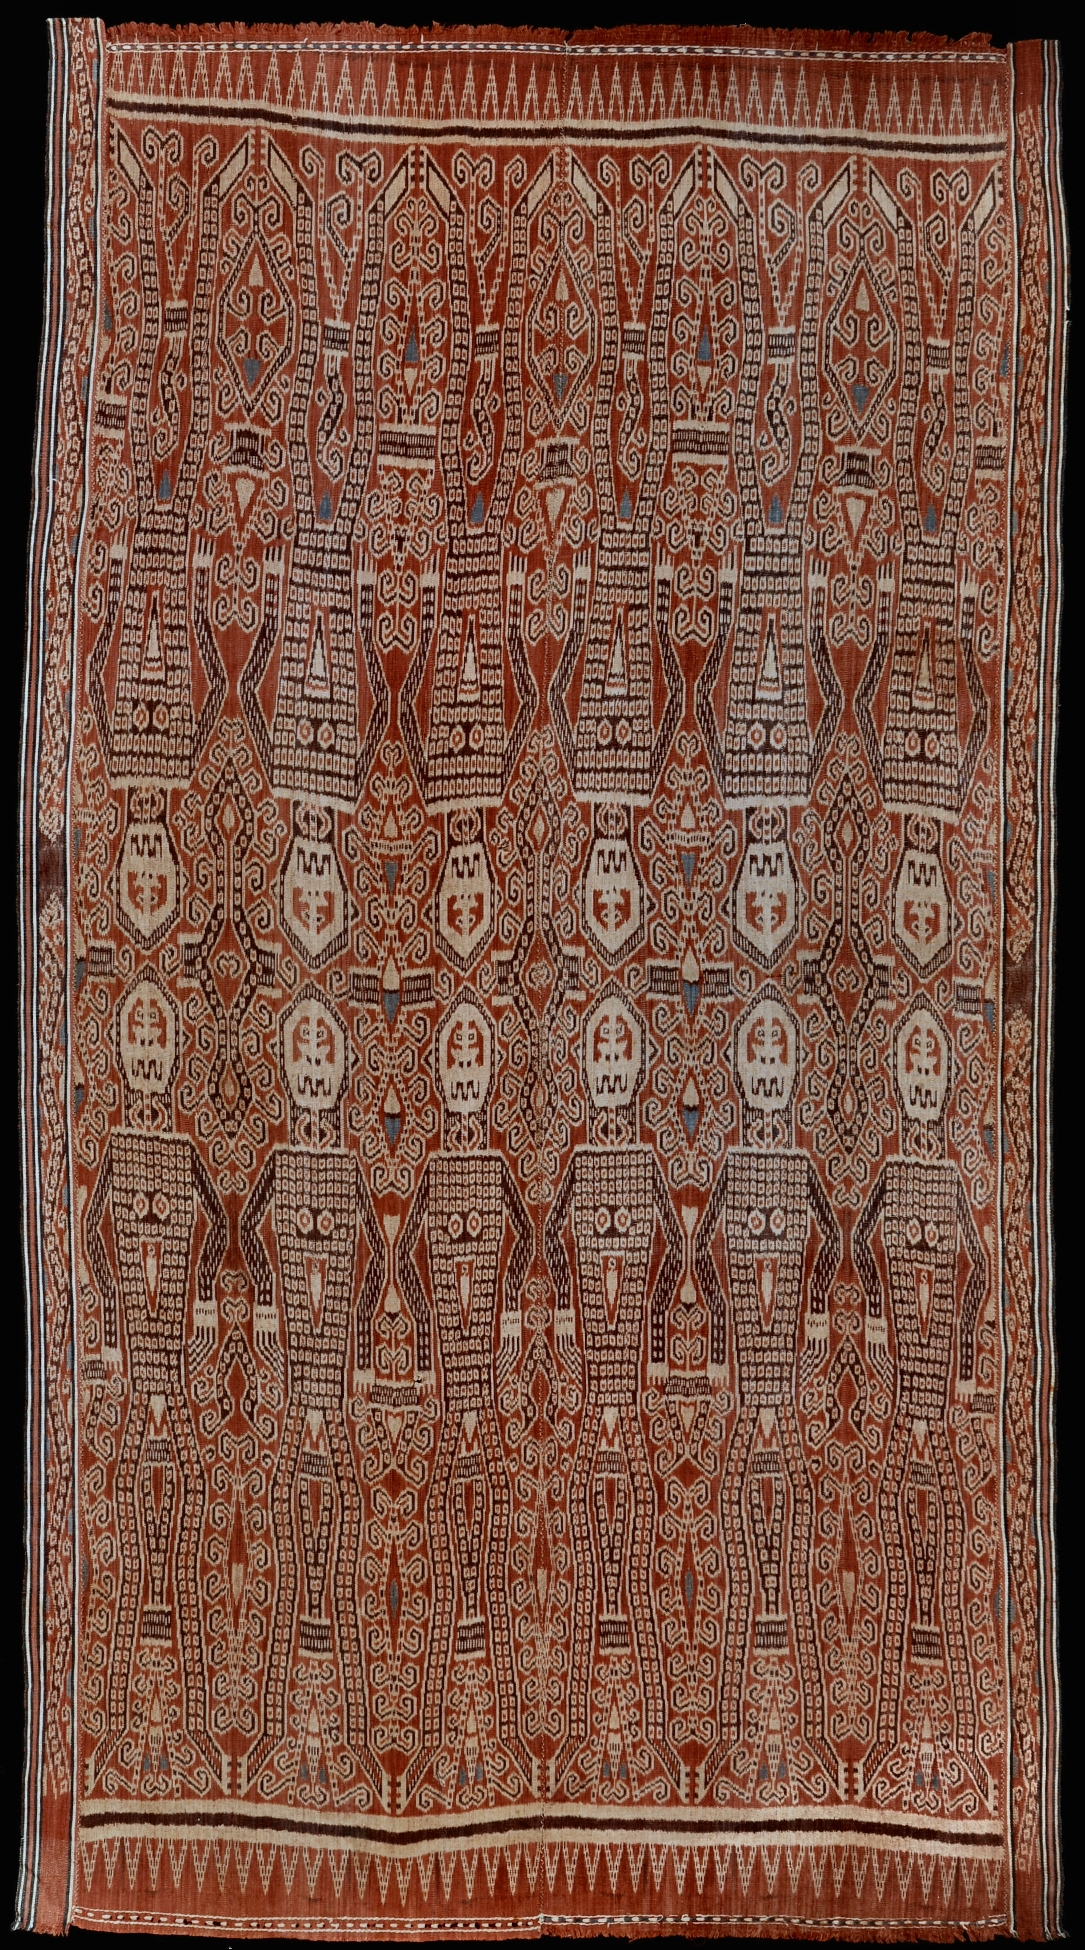 Borneo, Sarawak Iban people  Pua , ritual blanket Warp ikat in hand-spun cotton 1925–1945  Pusaka Collection